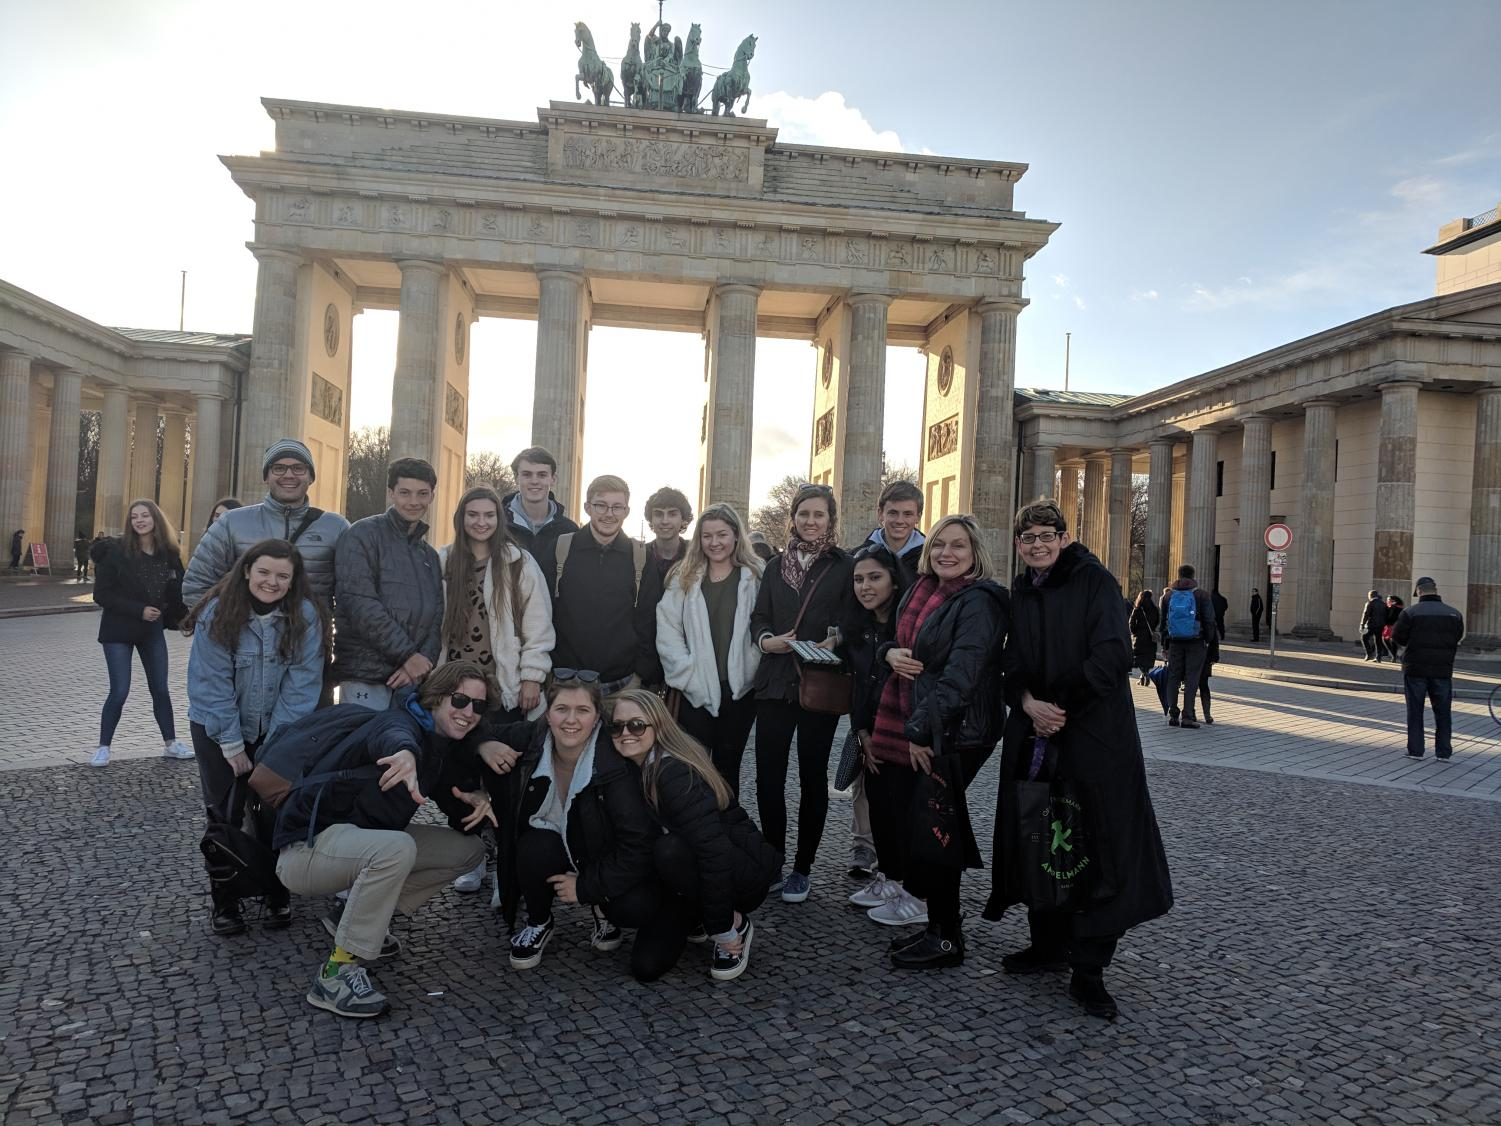 All of the AMHS students on the trip at the Brandenburg Gate in Berlin.